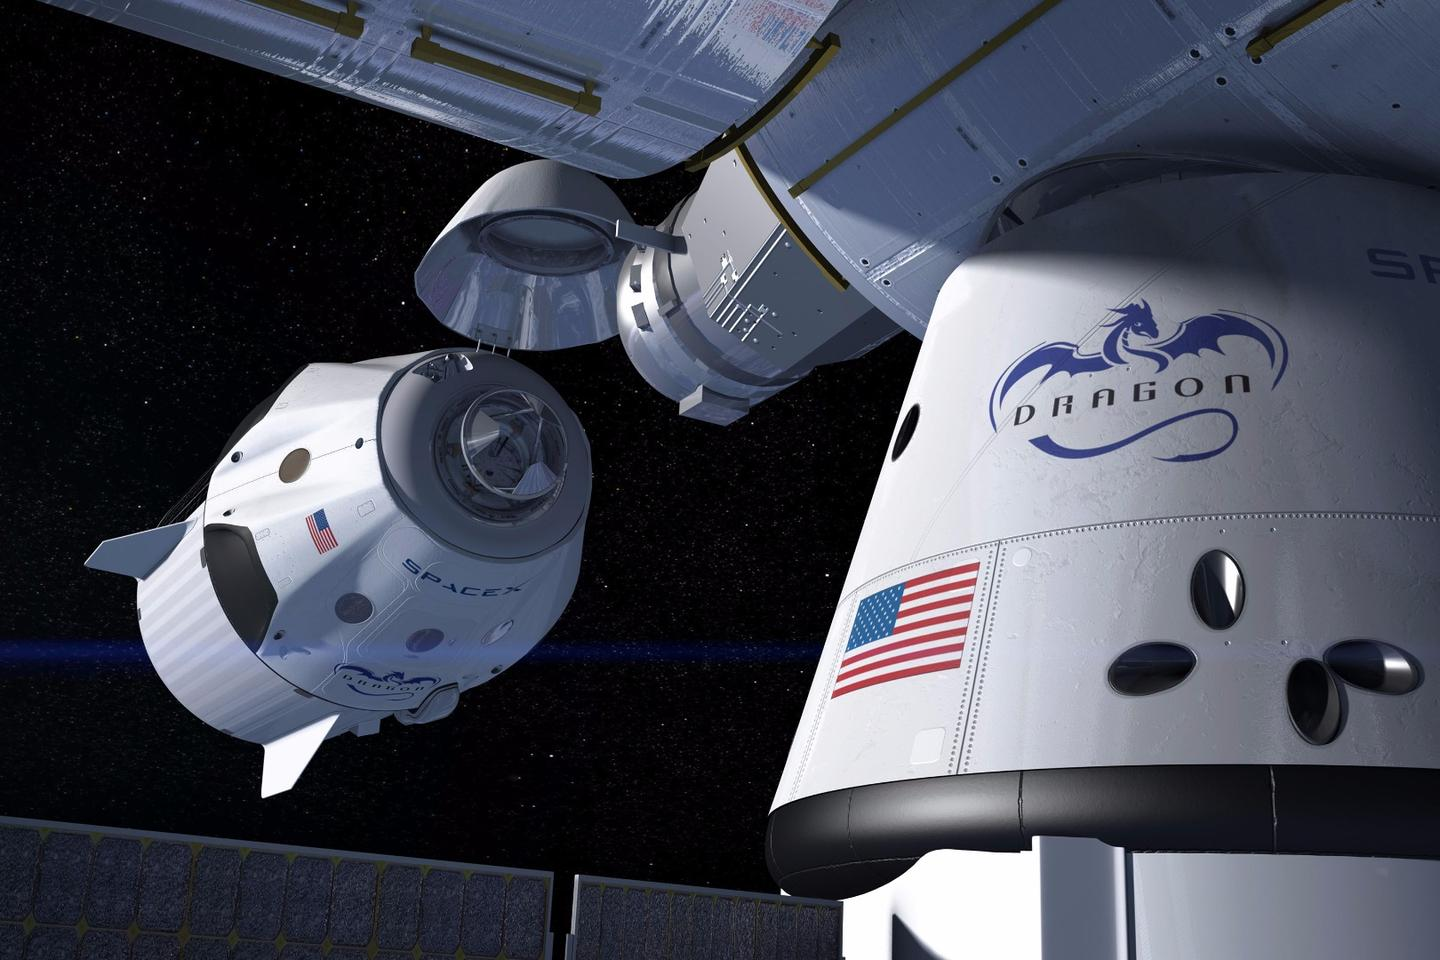 The Crew Dragon's first manned mission was originally scheduled for 2017